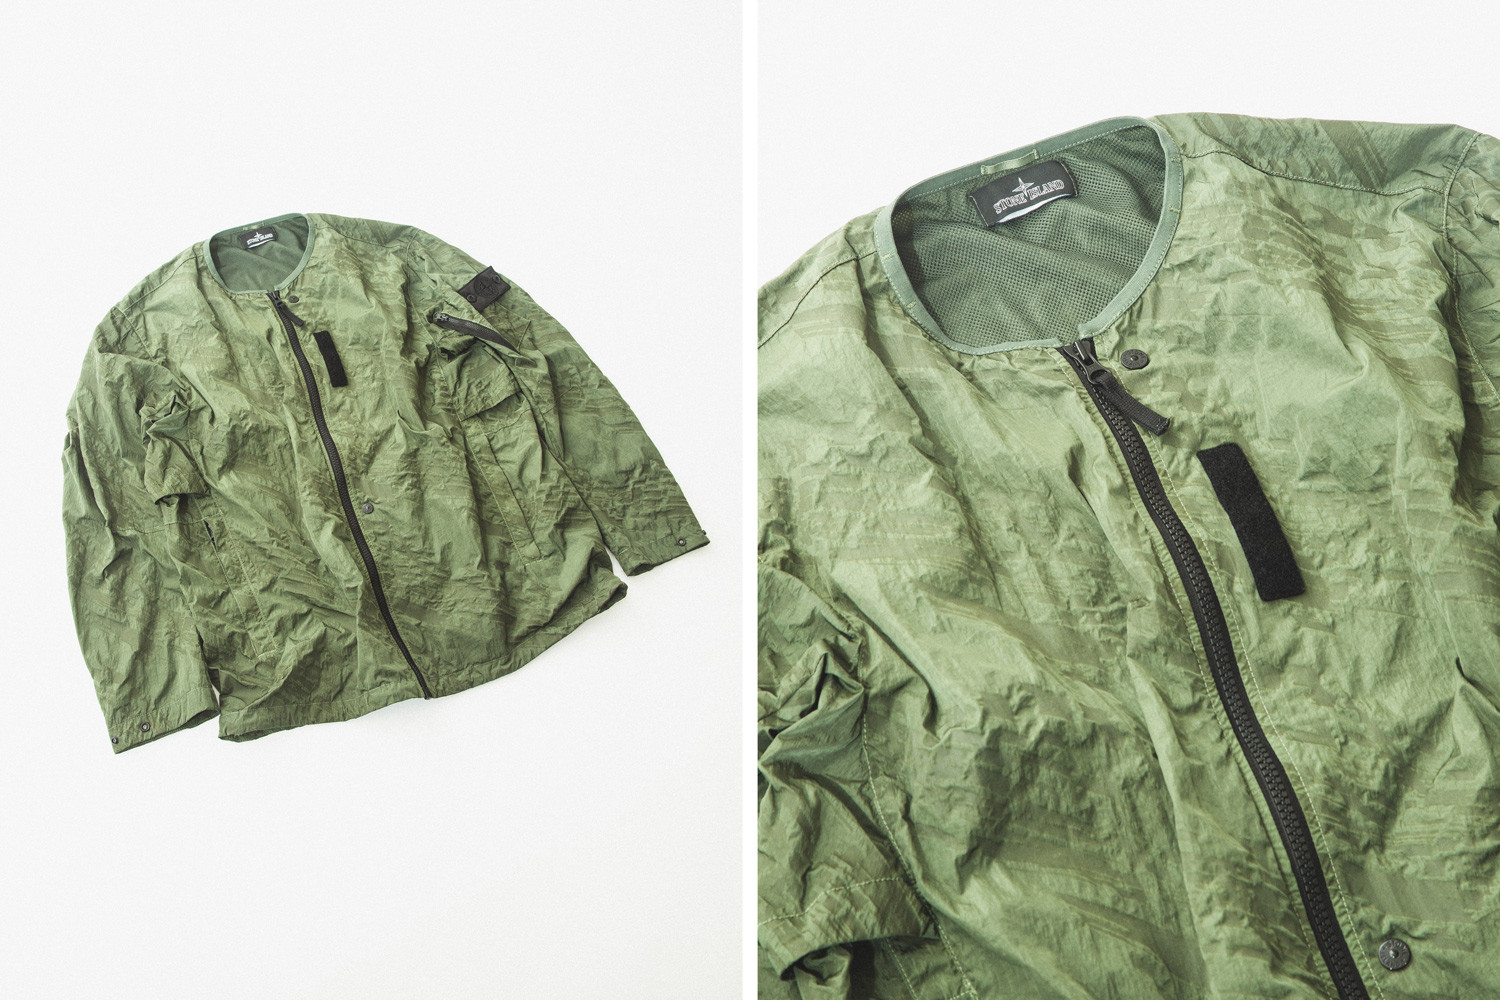 stone-island-spring-summer-2019-collection-new-arrivals-1